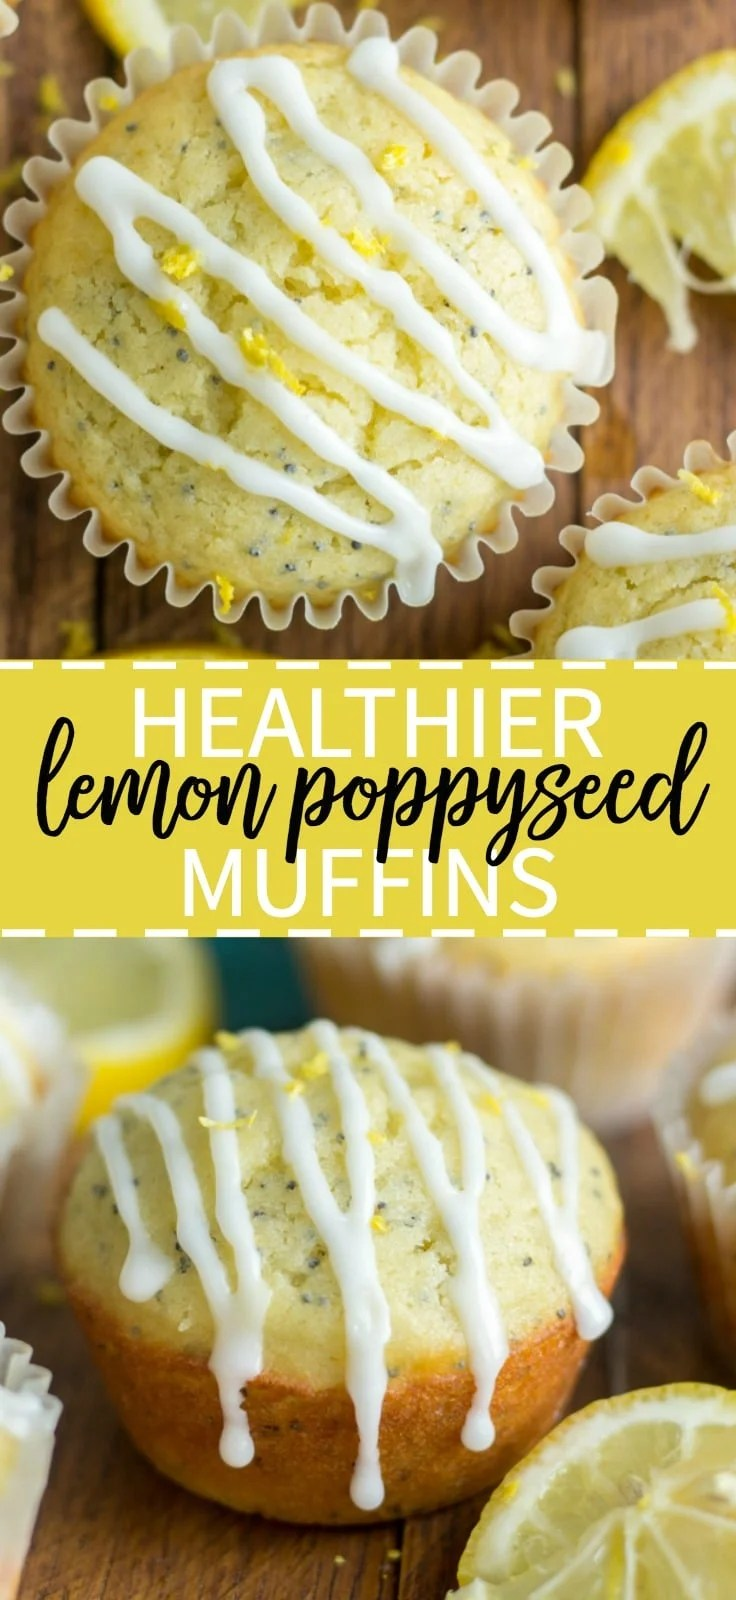 Healthier lemon poppy seed muffins are easy to make and the perfect spring recipe. They're filled with lemon, olive oil and topped with a lemon icing. You will not believe how yummy they are!